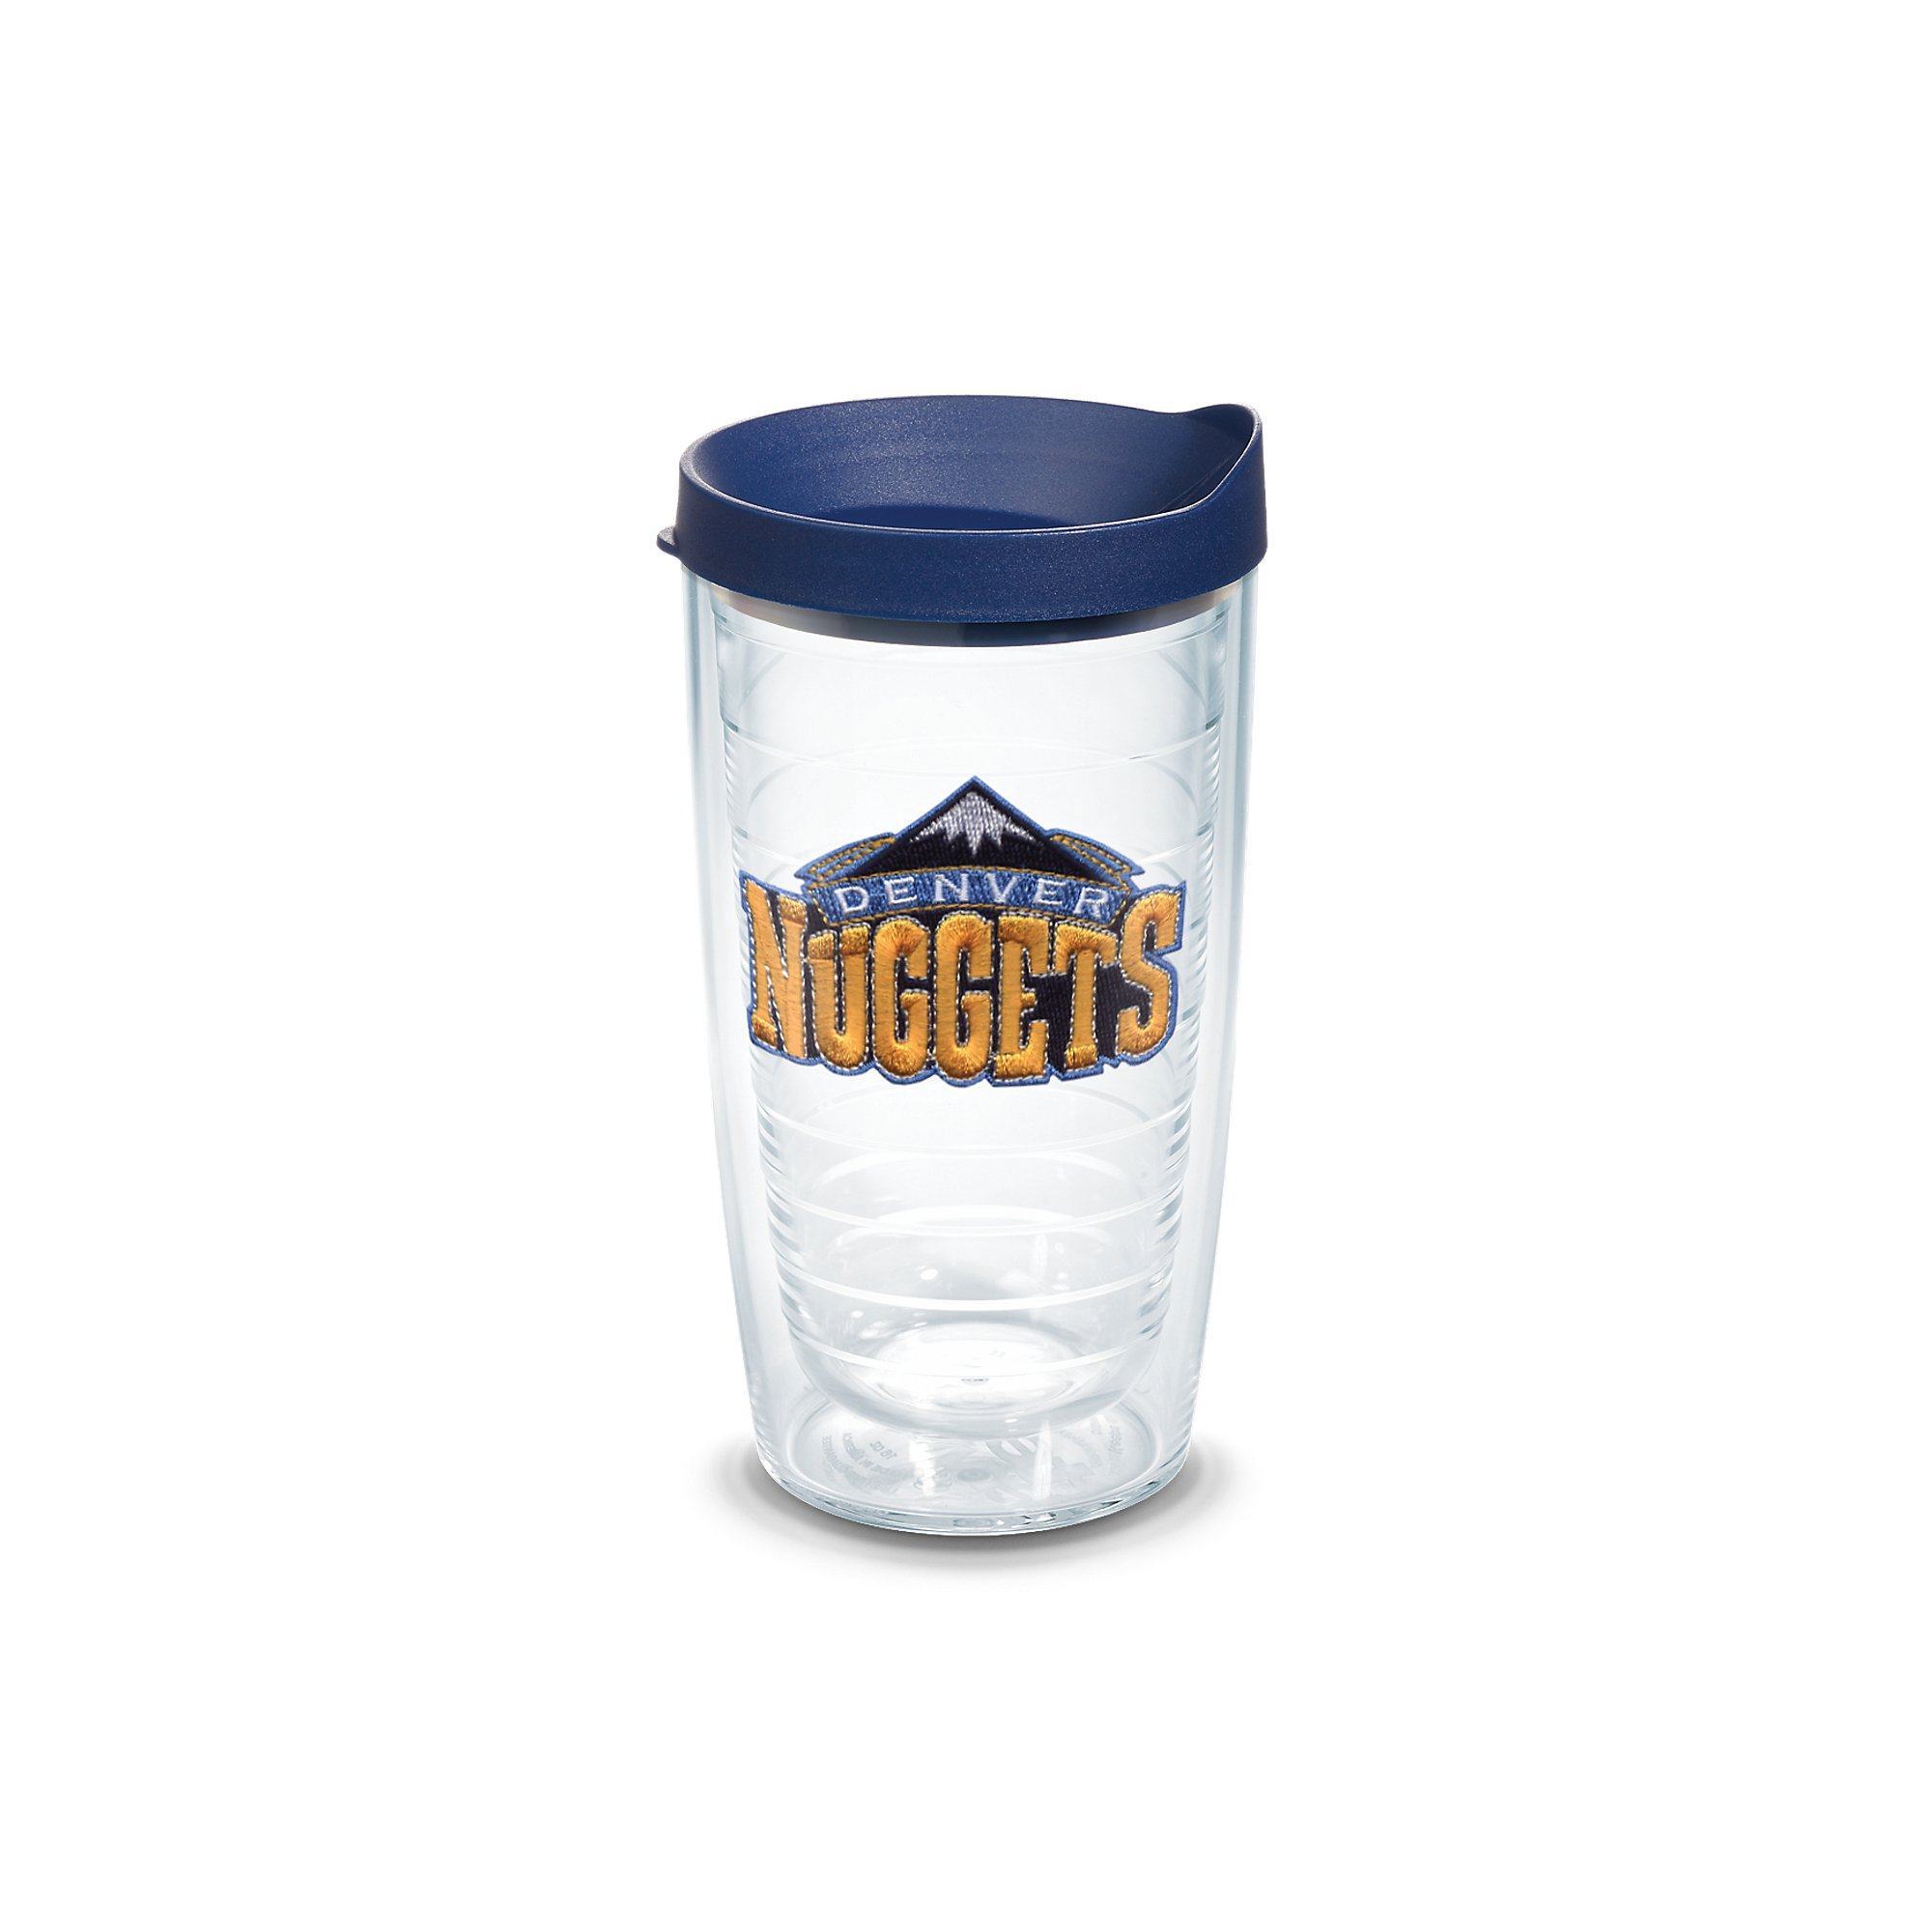 Tervis 1051601 NBA Denver Nuggets Primary Logo Tumbler with Emblem and Navy Lid 16oz, Clear